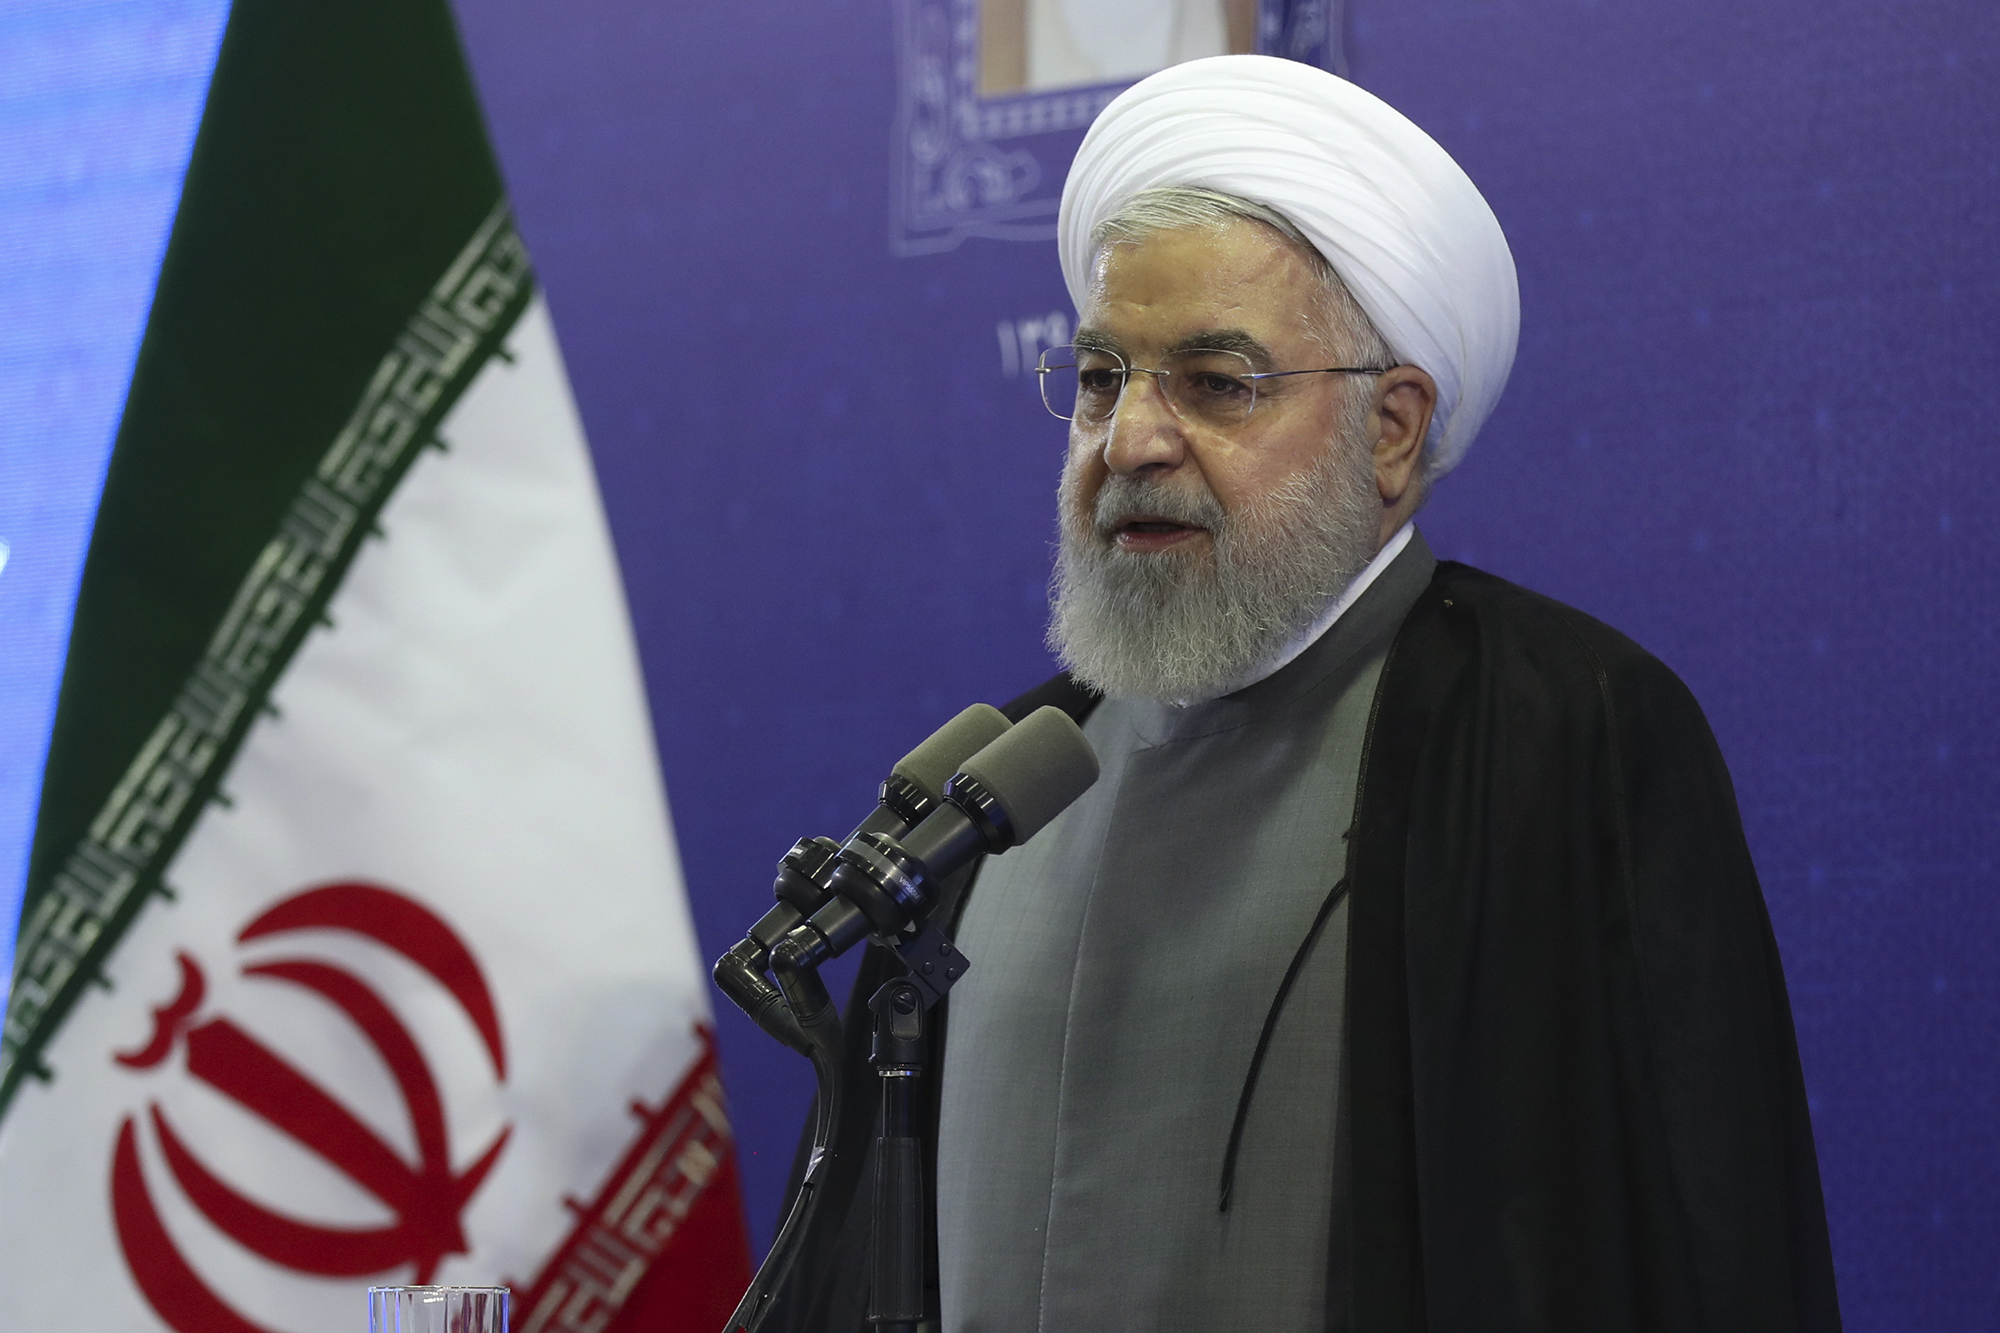 Report: Iran seizes tanker carrying smuggled fuel in Gulf